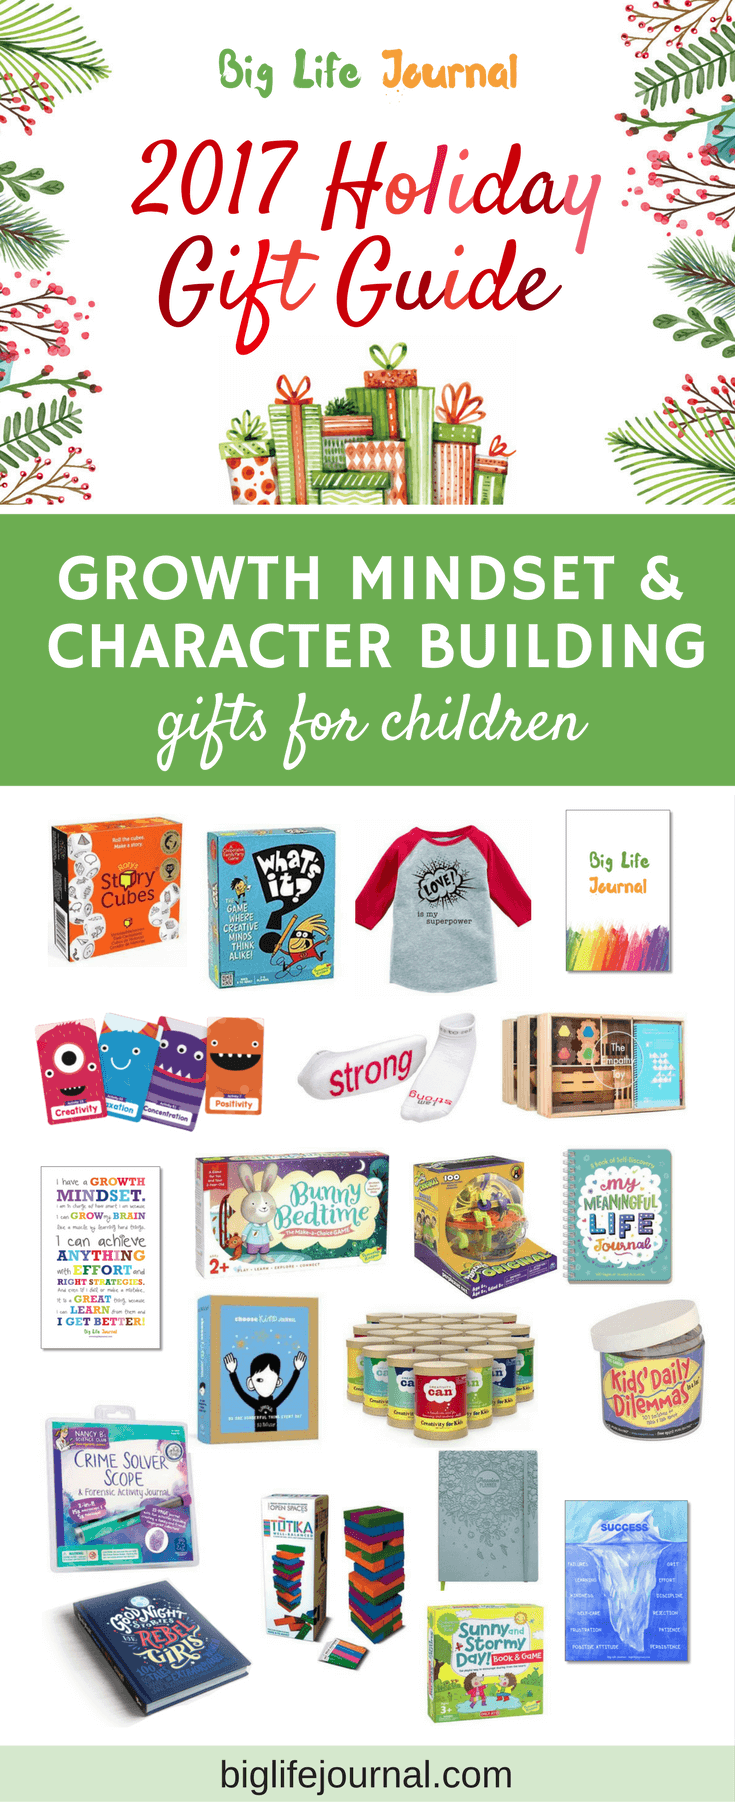 Explore this list of growth mindset and character building gifts for childre!